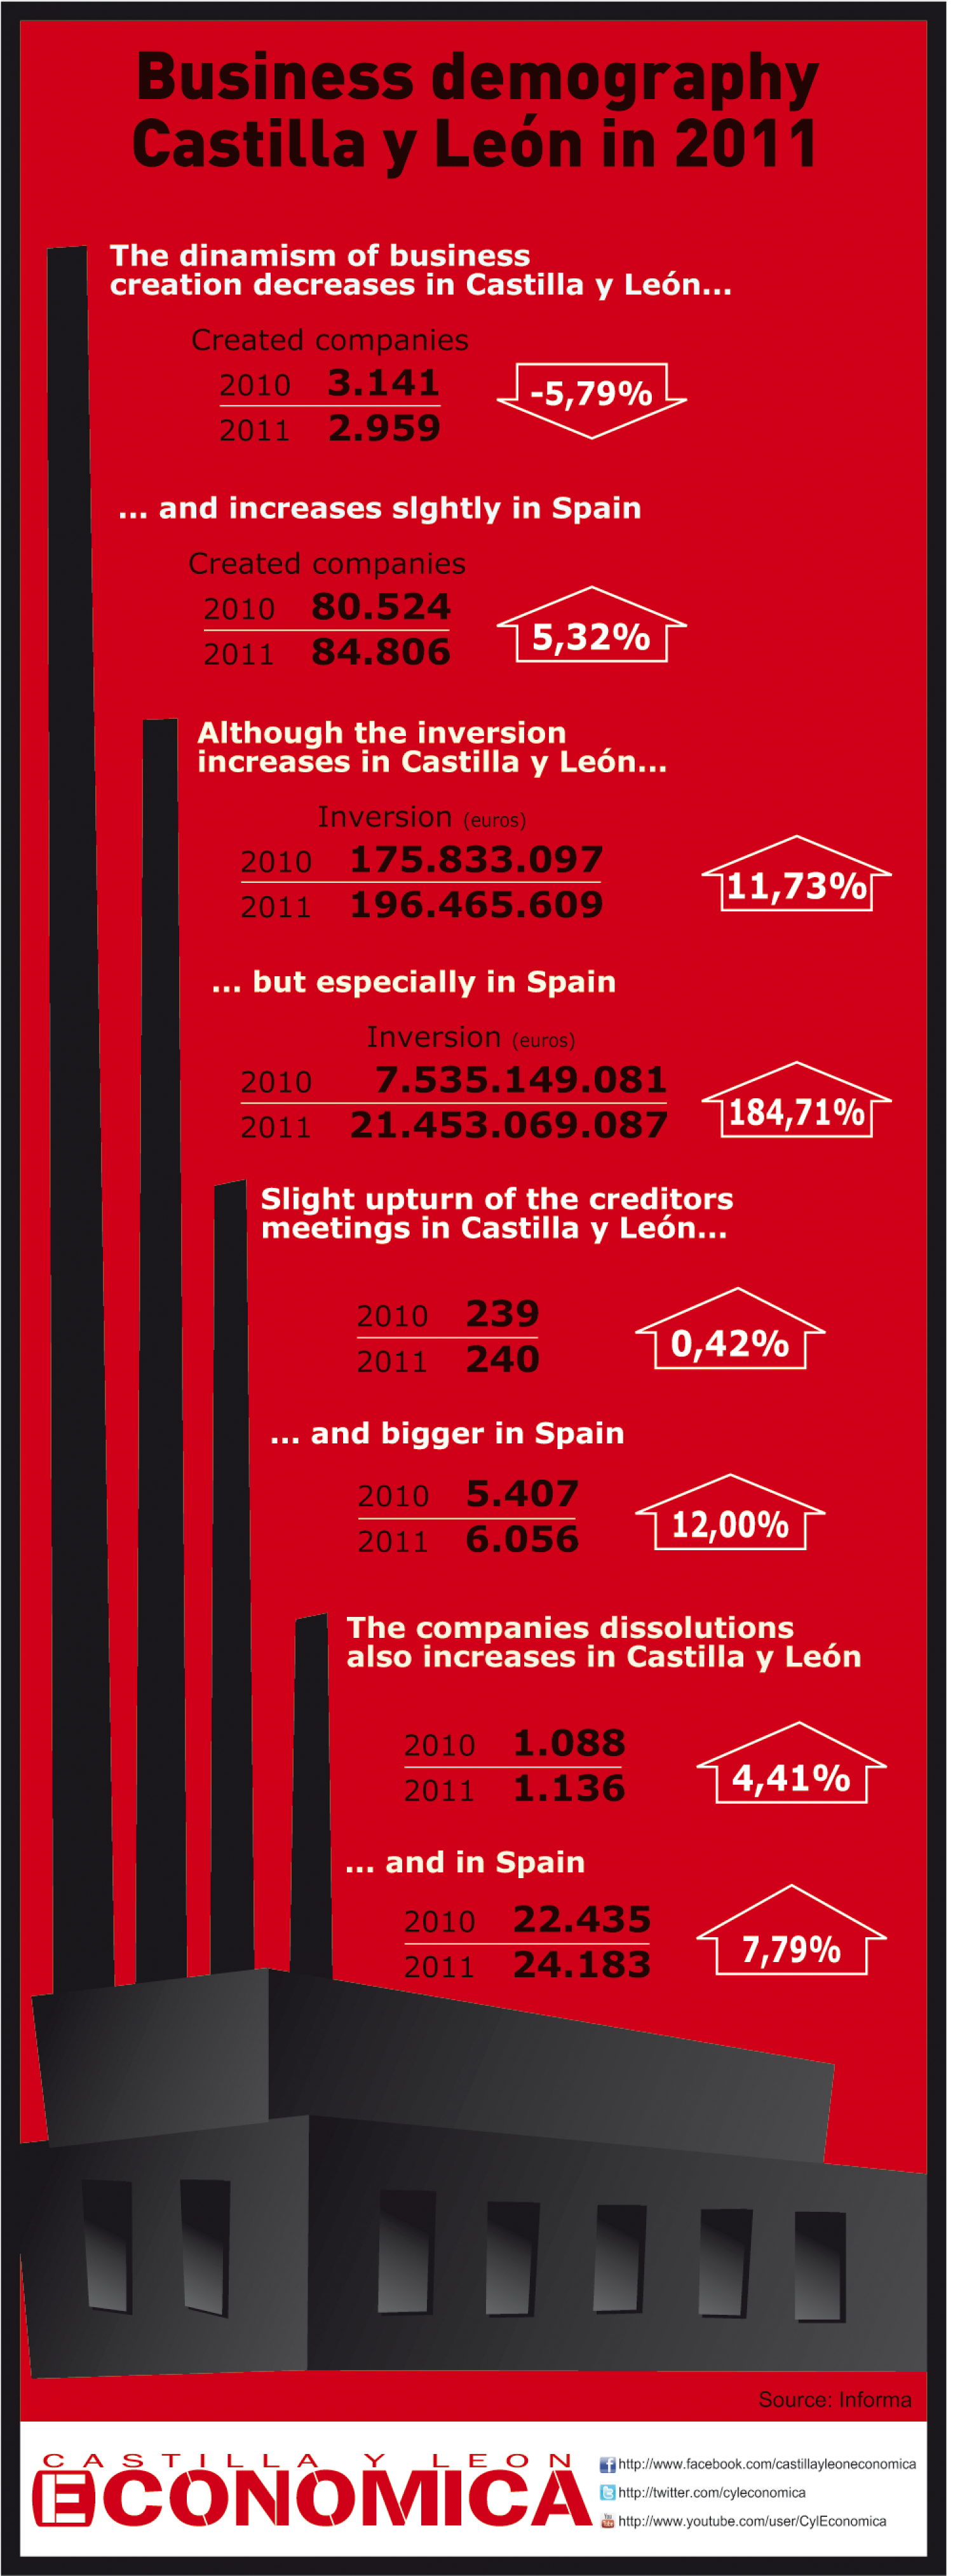 Business demography in Castilla y León in 2011 Infographic